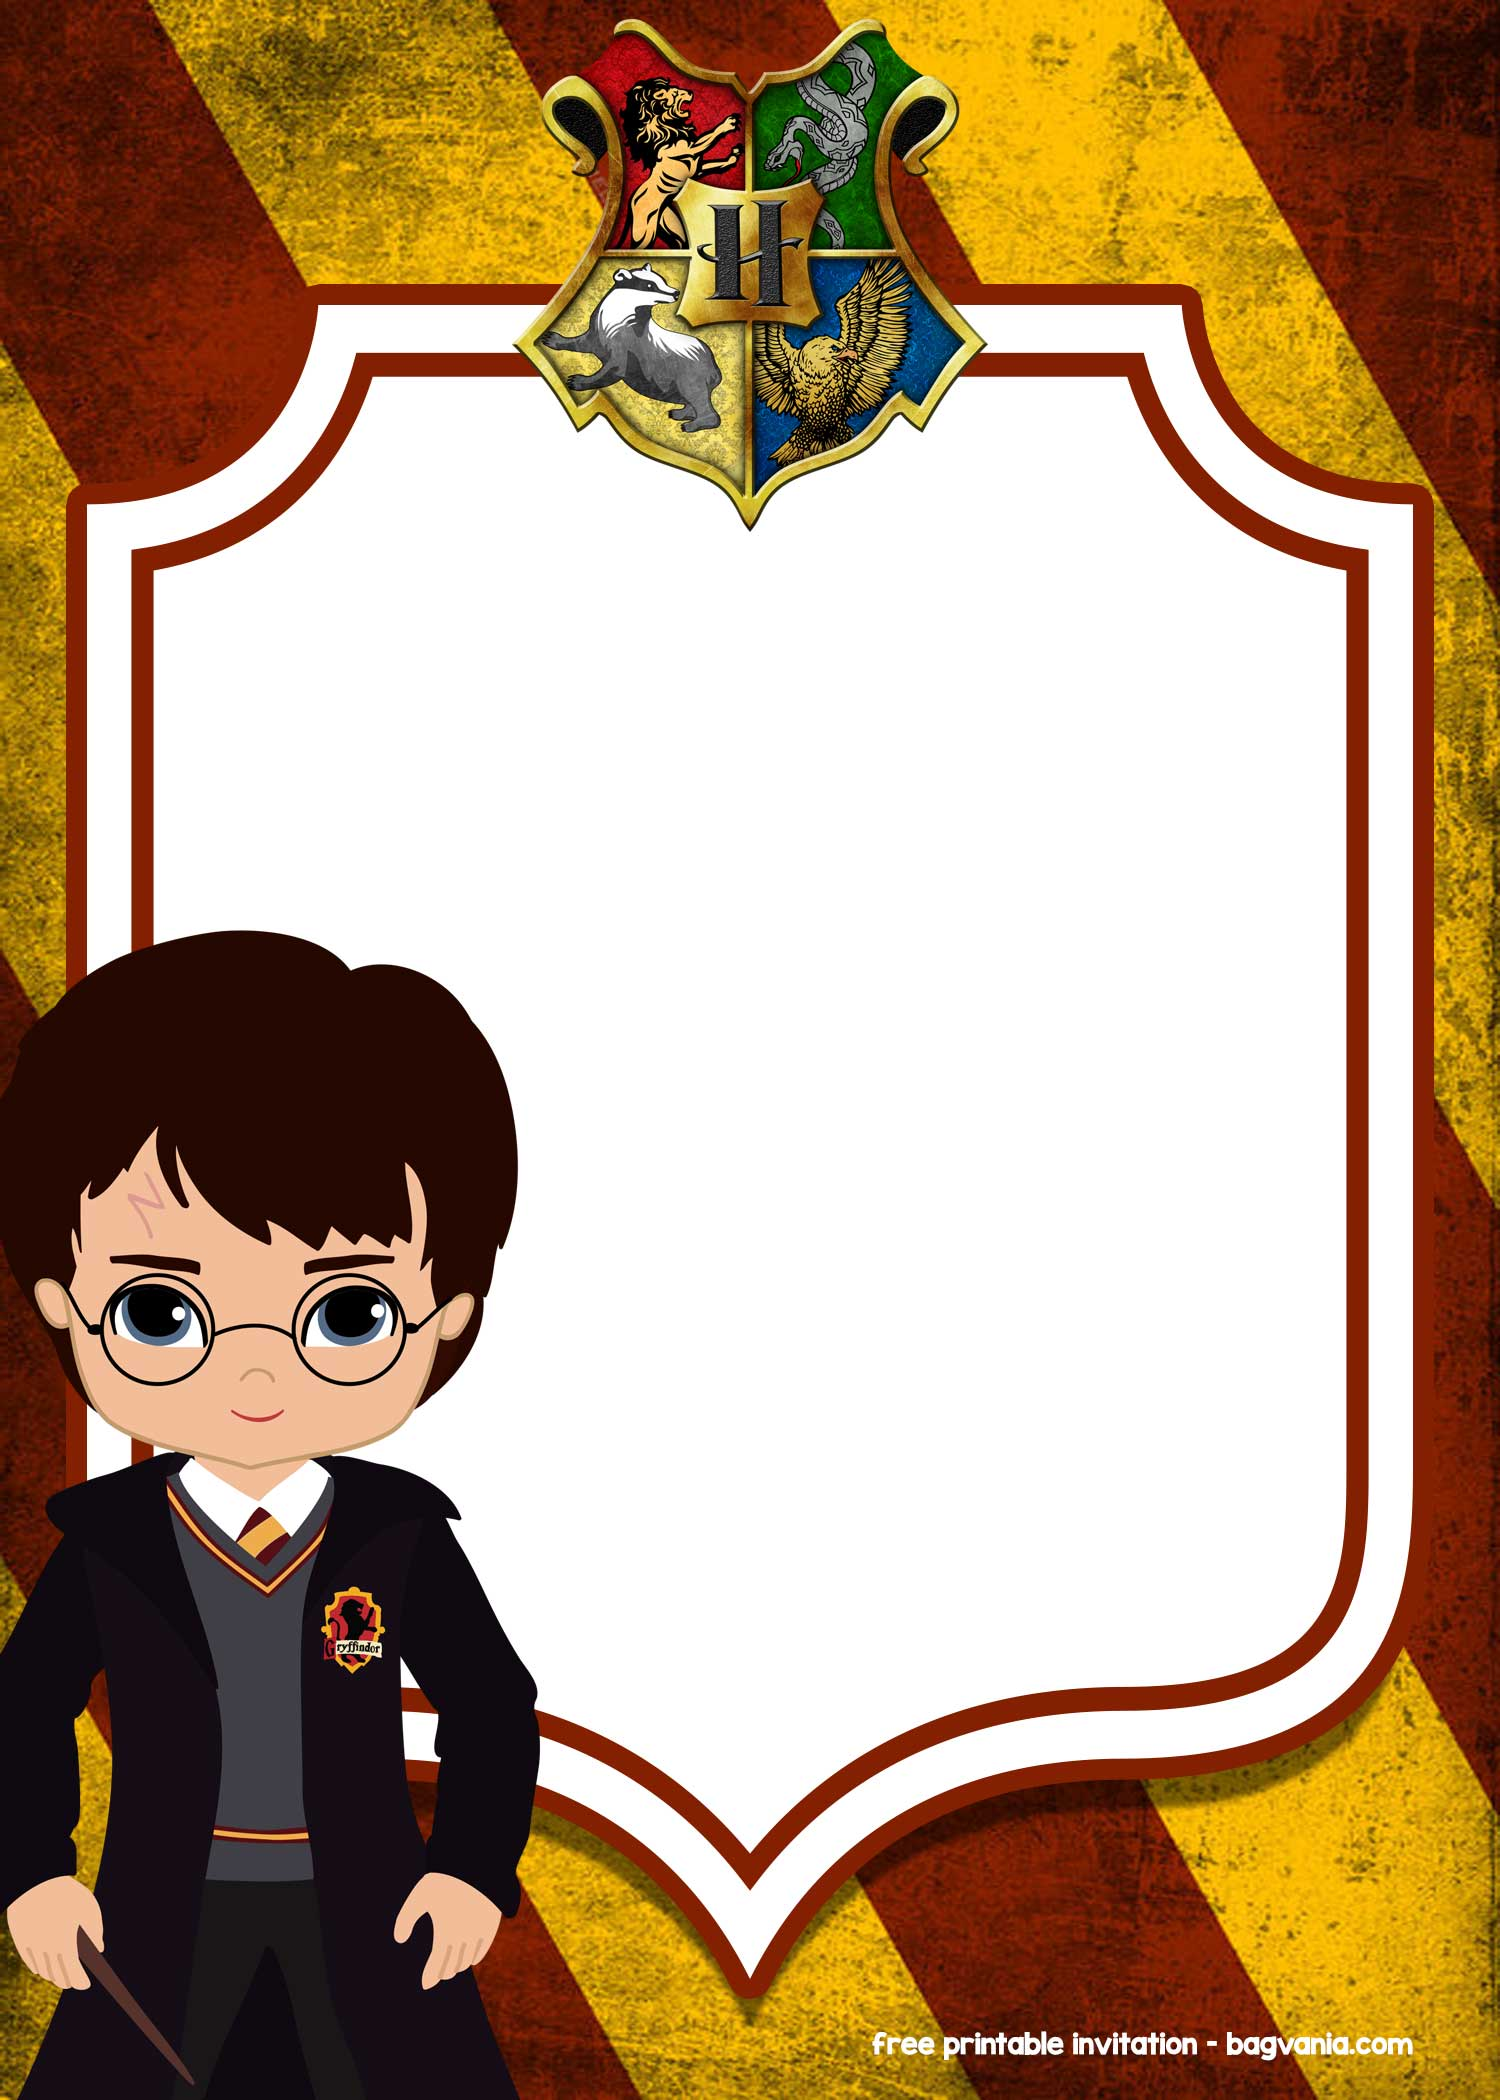 FREE Printable Harry Potter Invitation Templates FREE